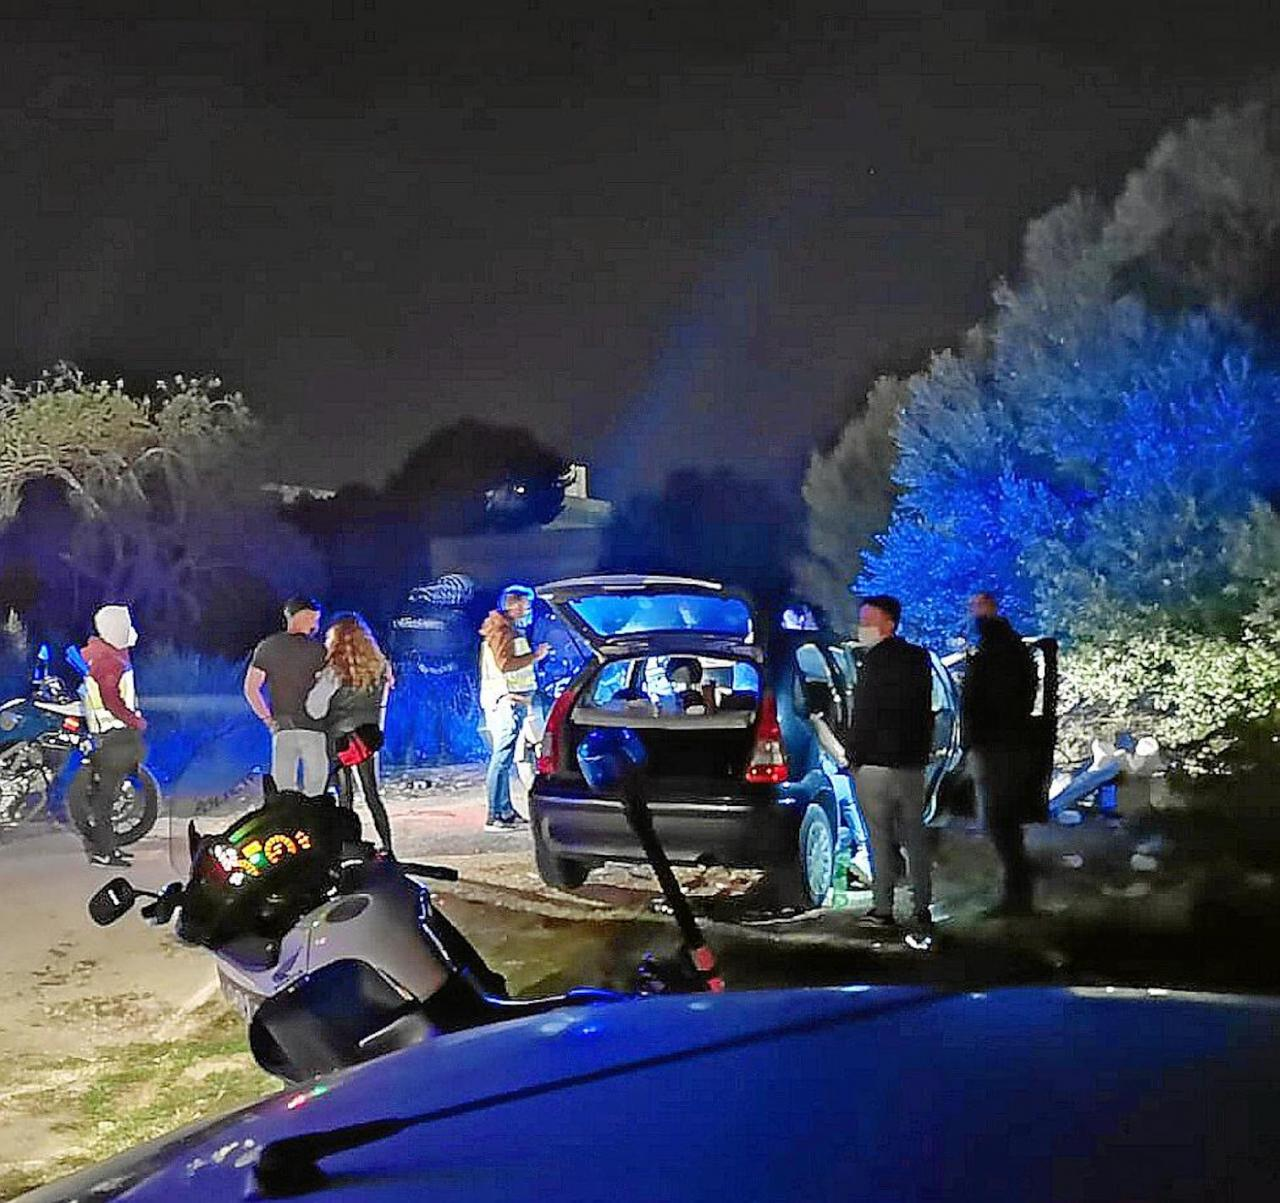 Police break up illegal drinking party in Palma.